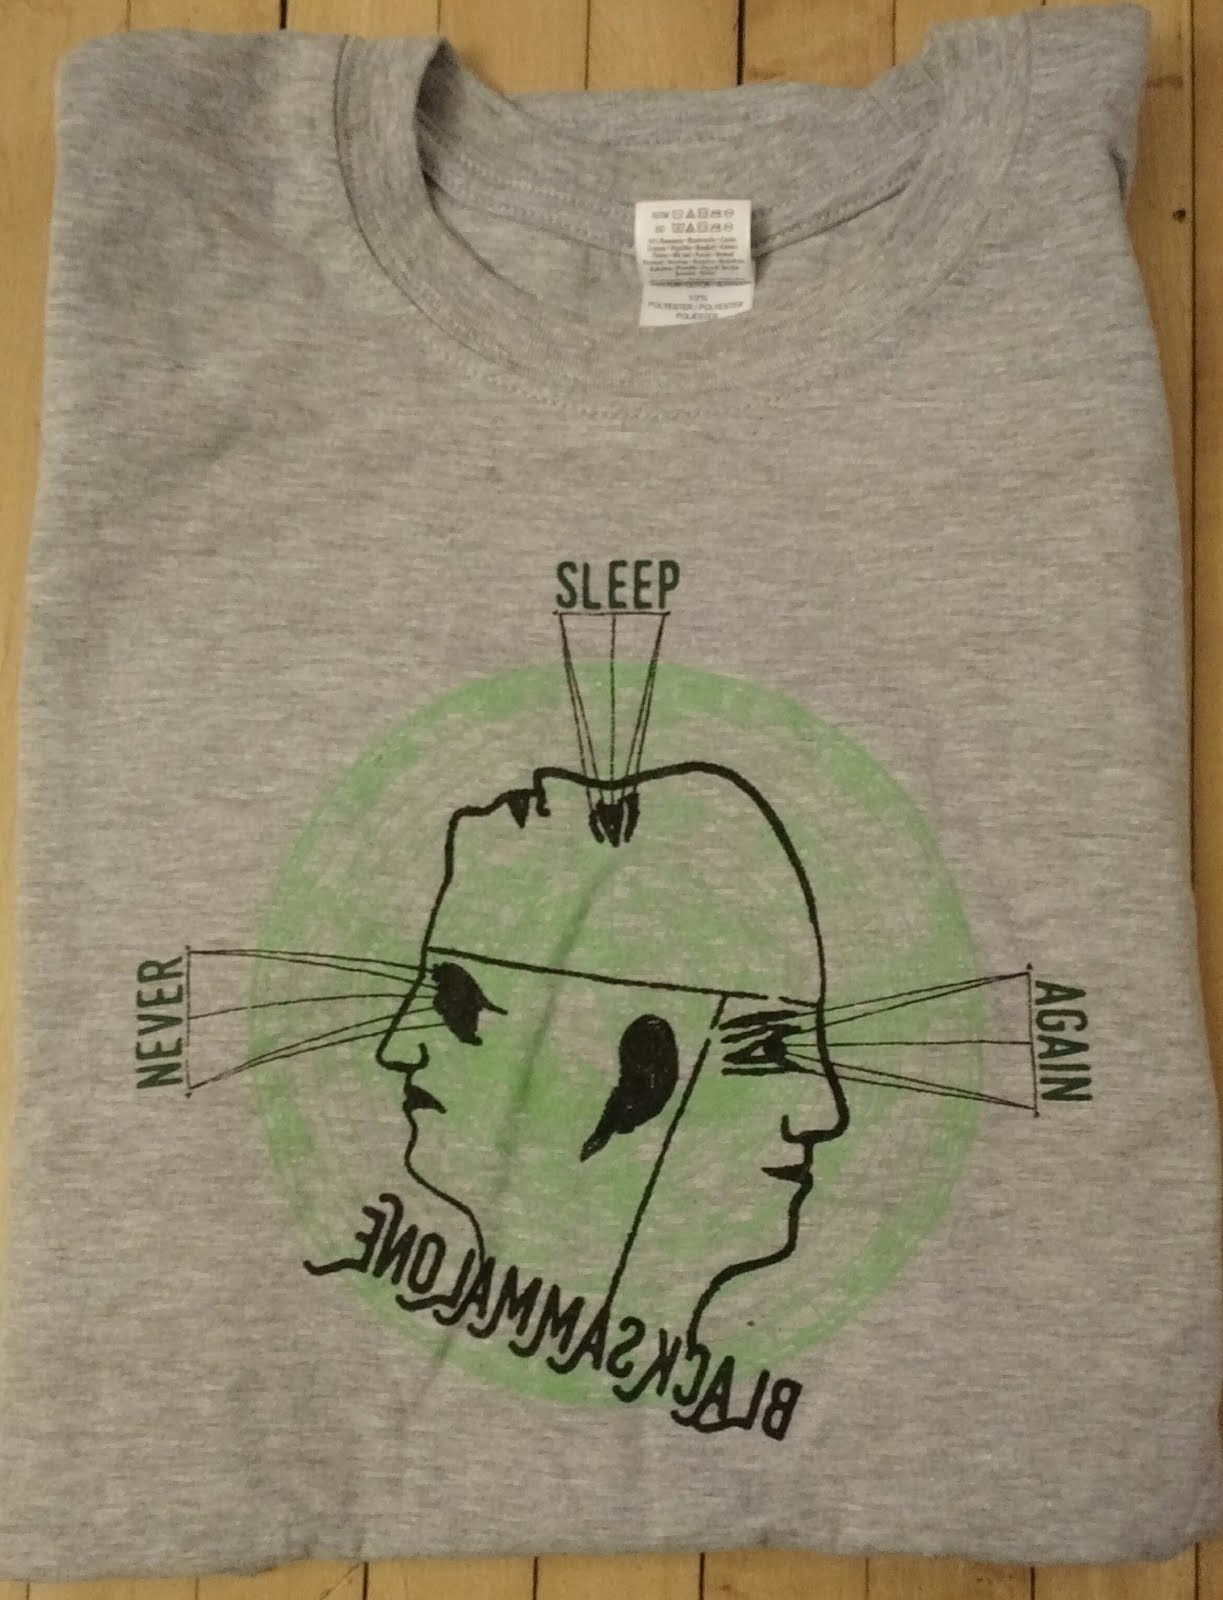 $10 - Never Sleep Again T shirt / Gildan Softstyle 100% cotton T